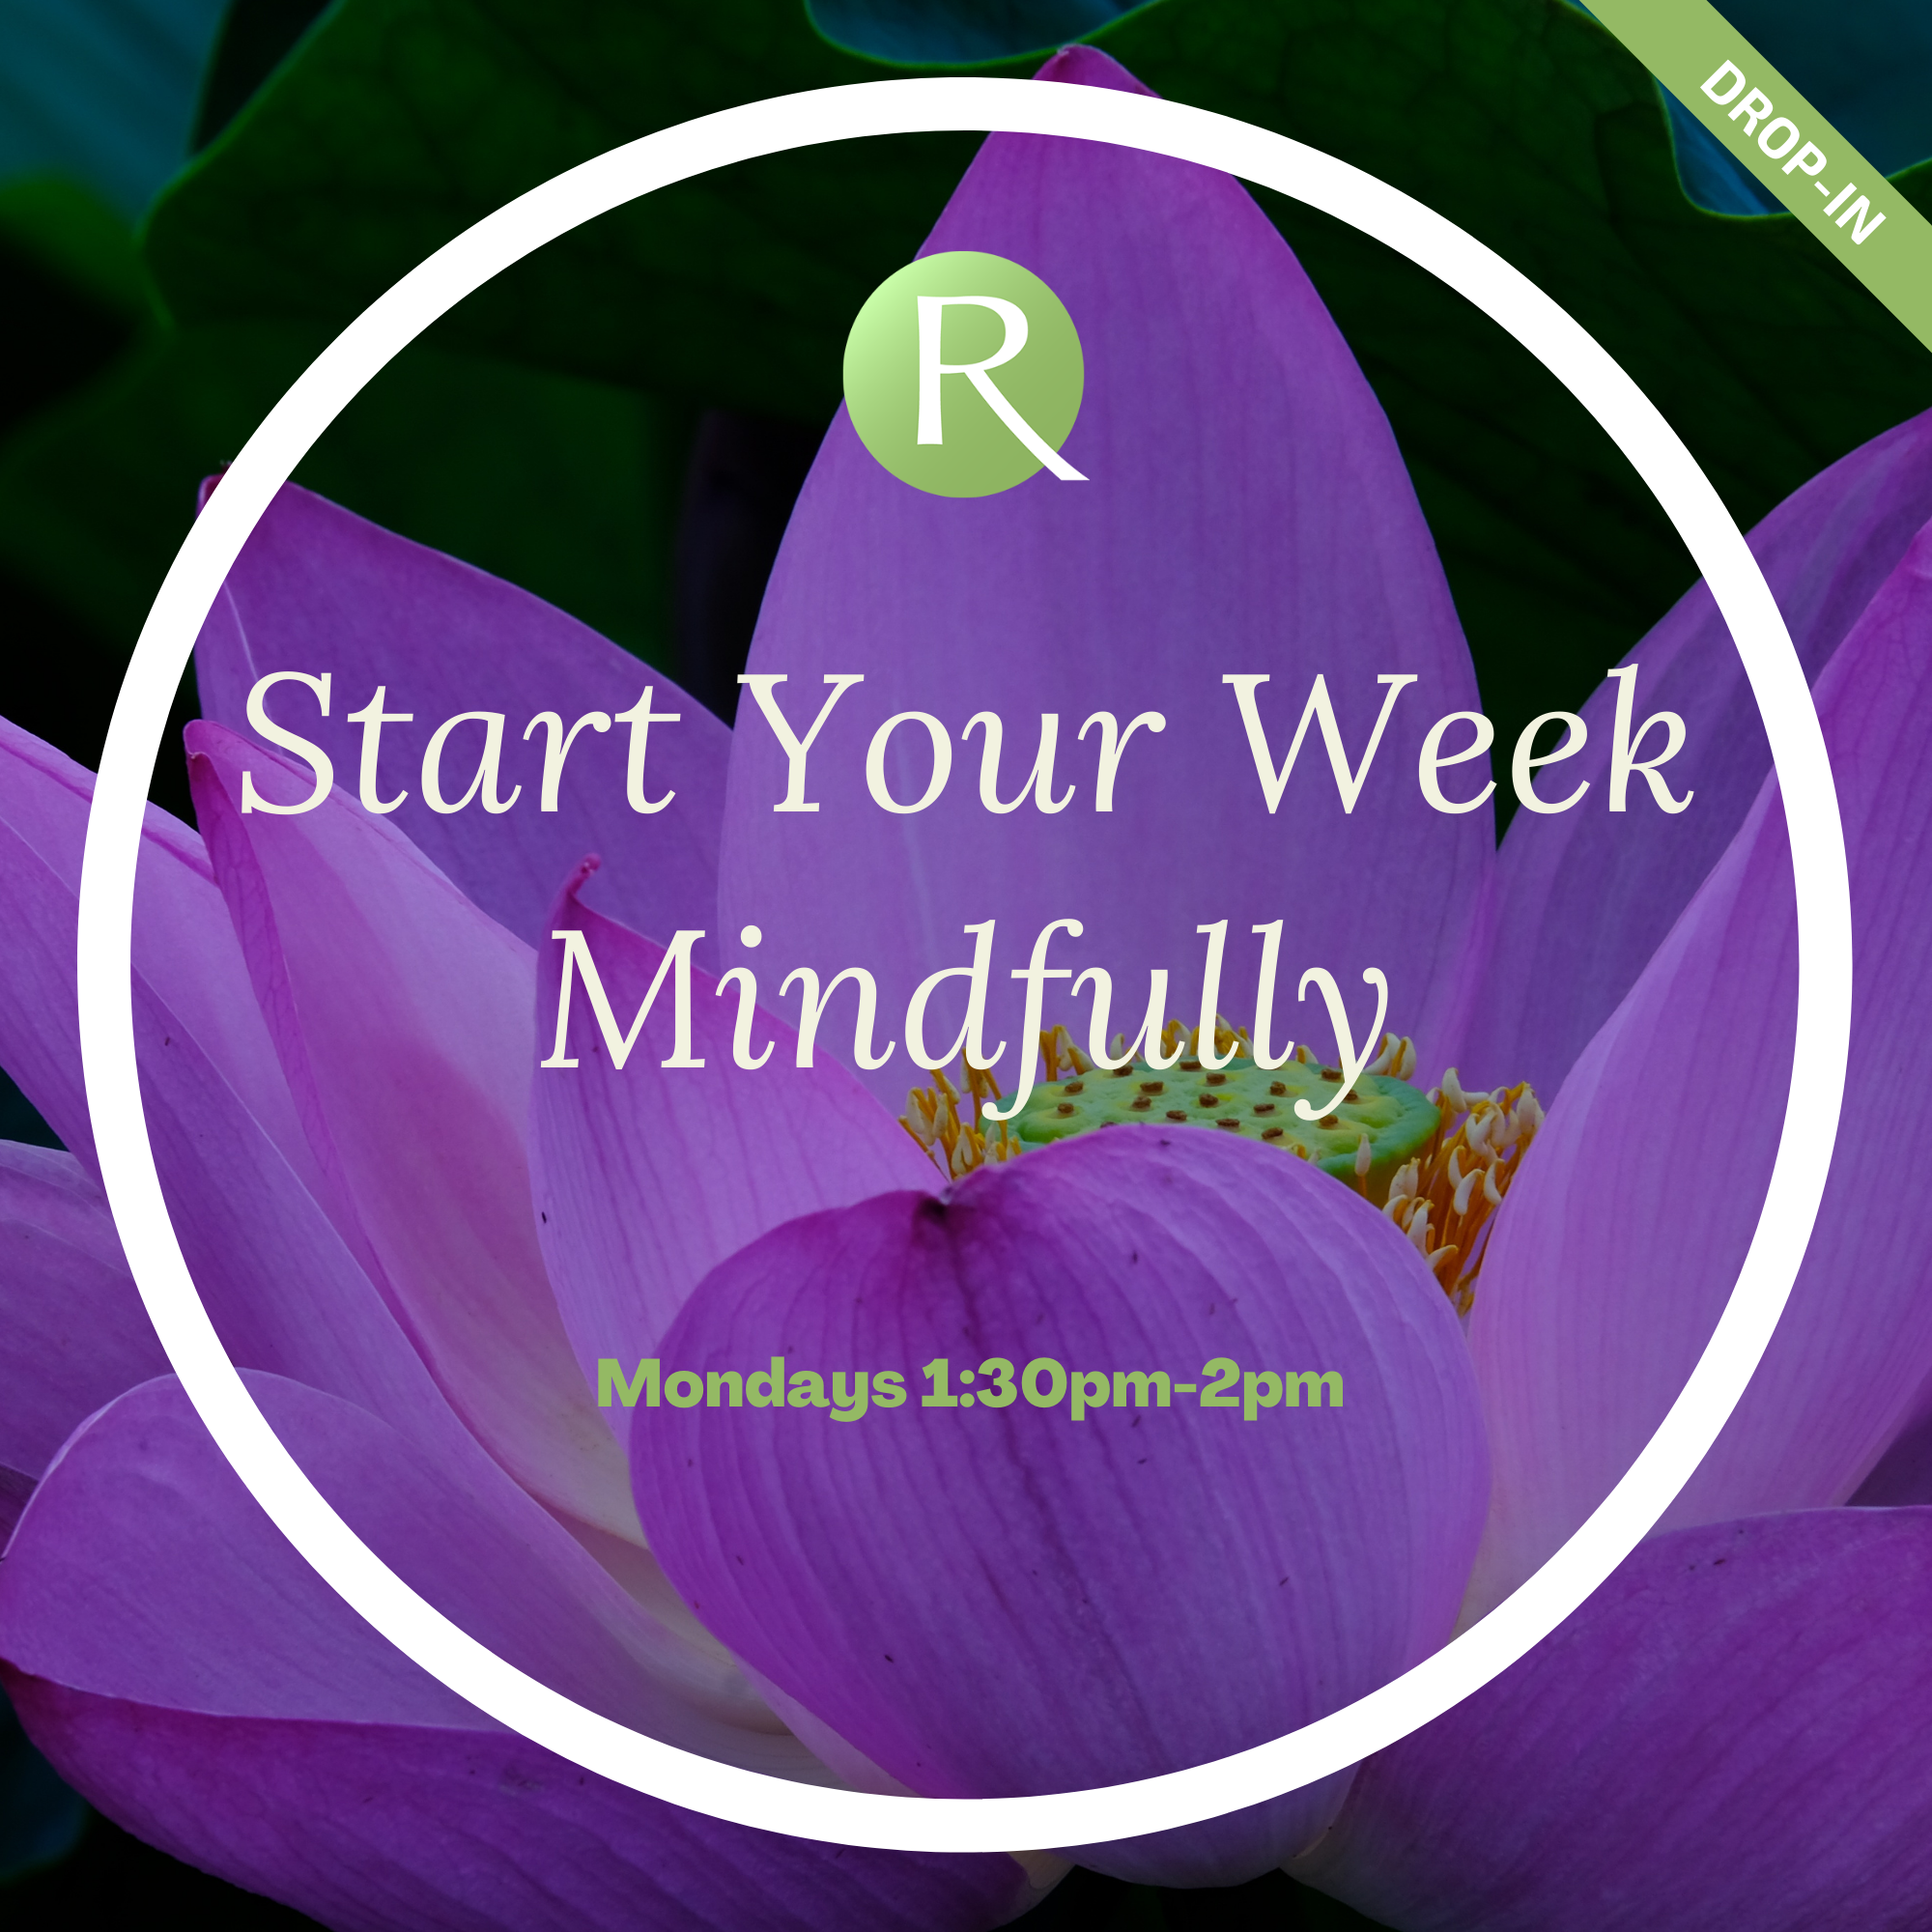 Start Your Week Mindfully